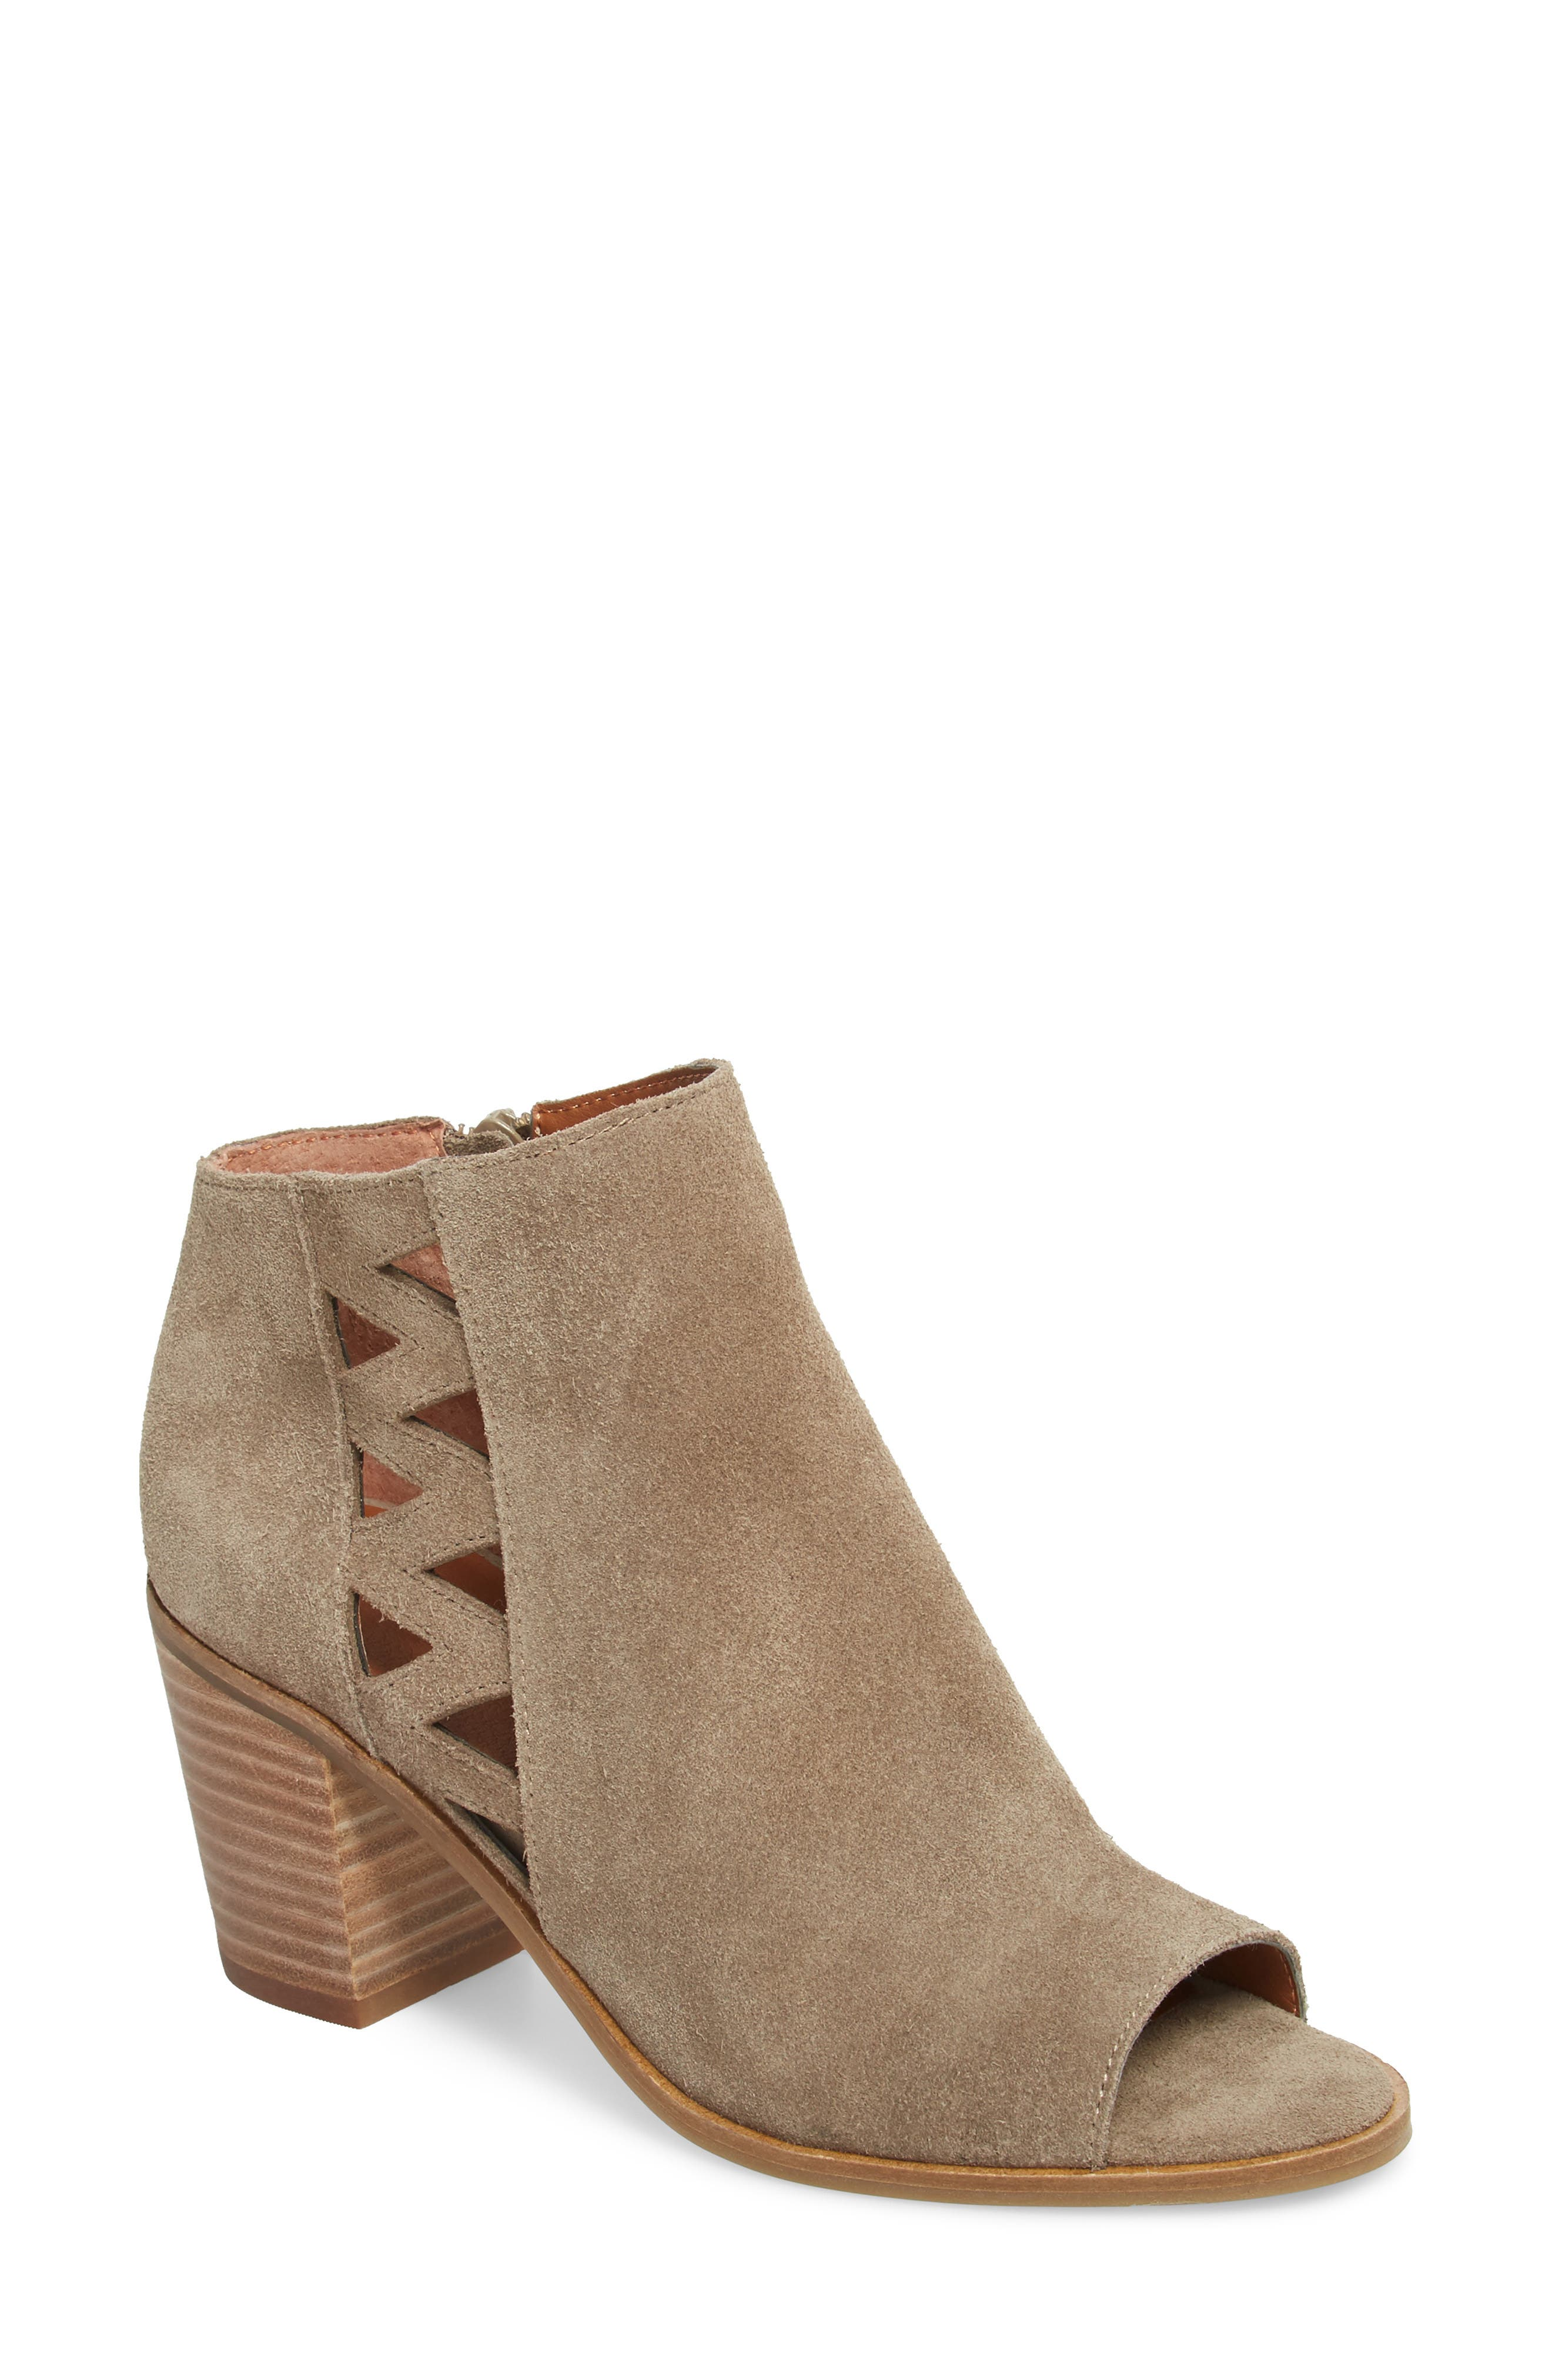 Kantoah Bootie,                         Main,                         color, Brindle Suede